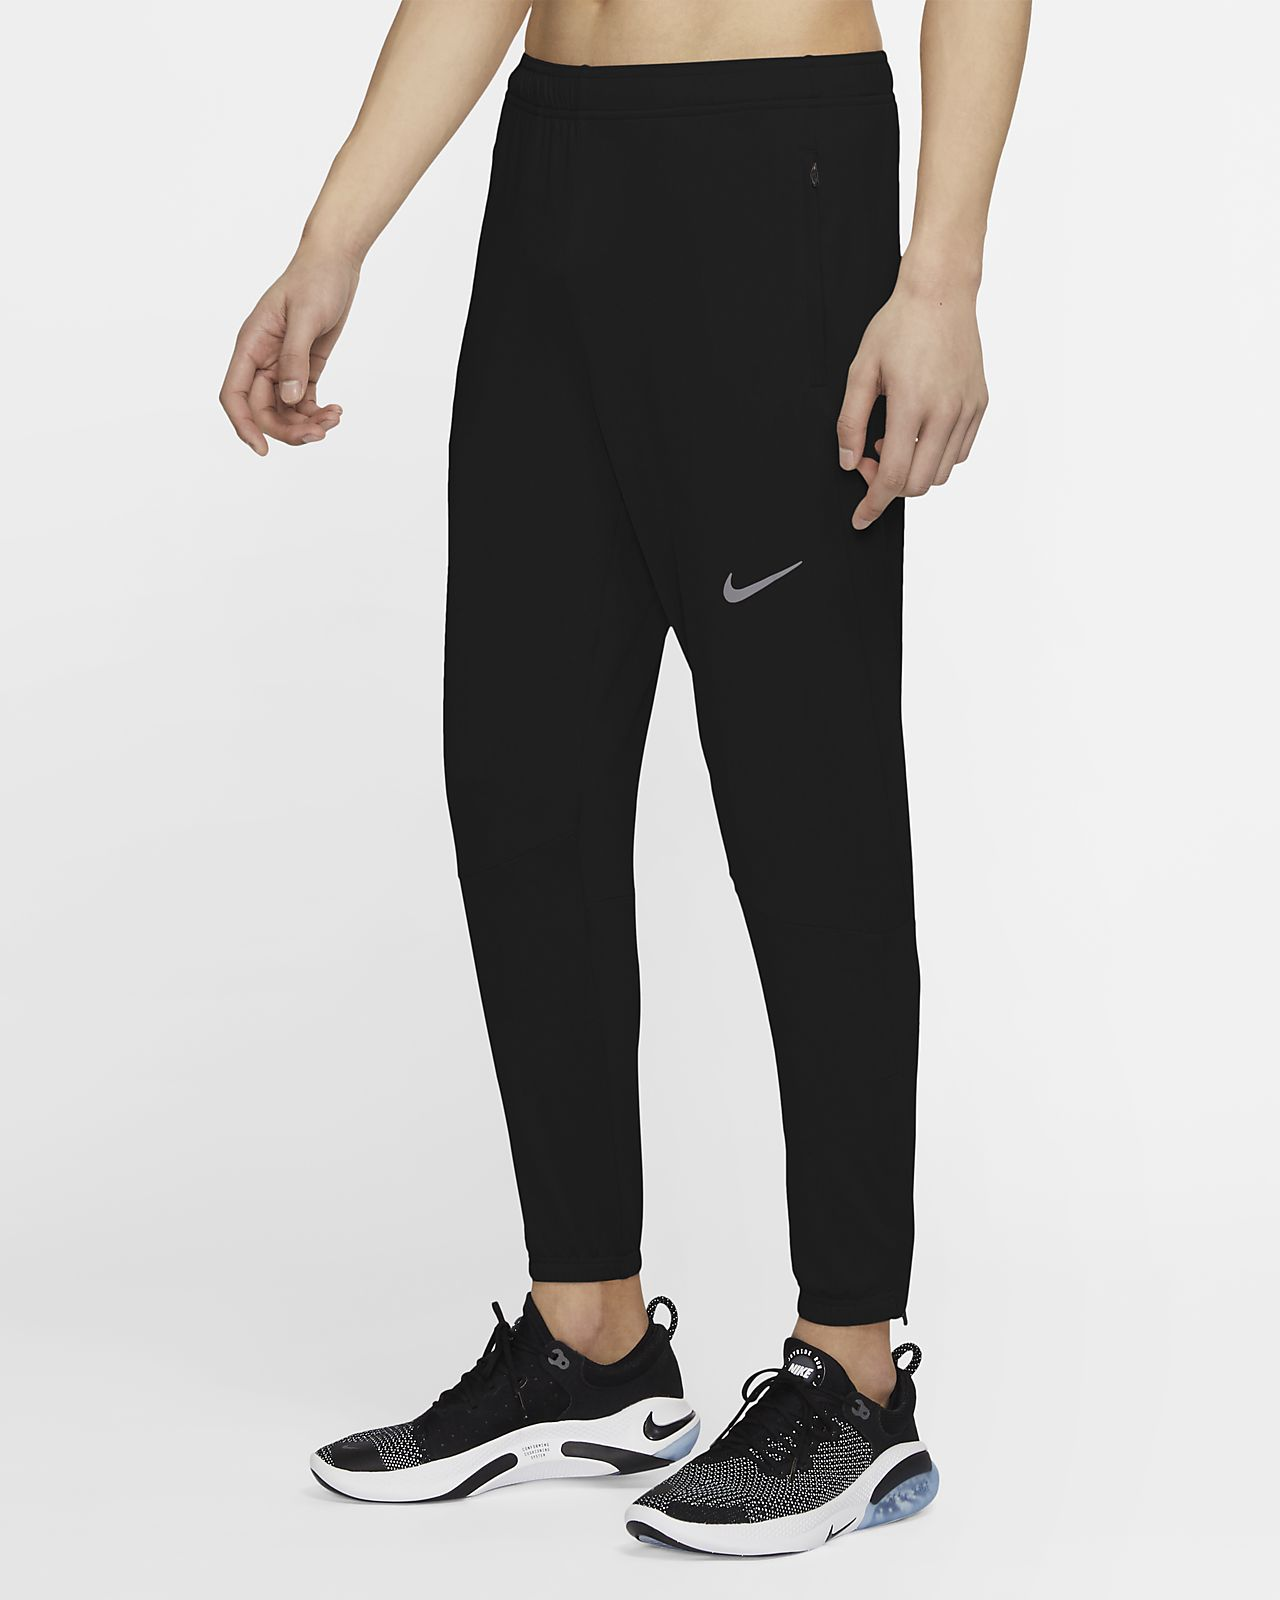 Nike Essential Men's Knit Running Trousers